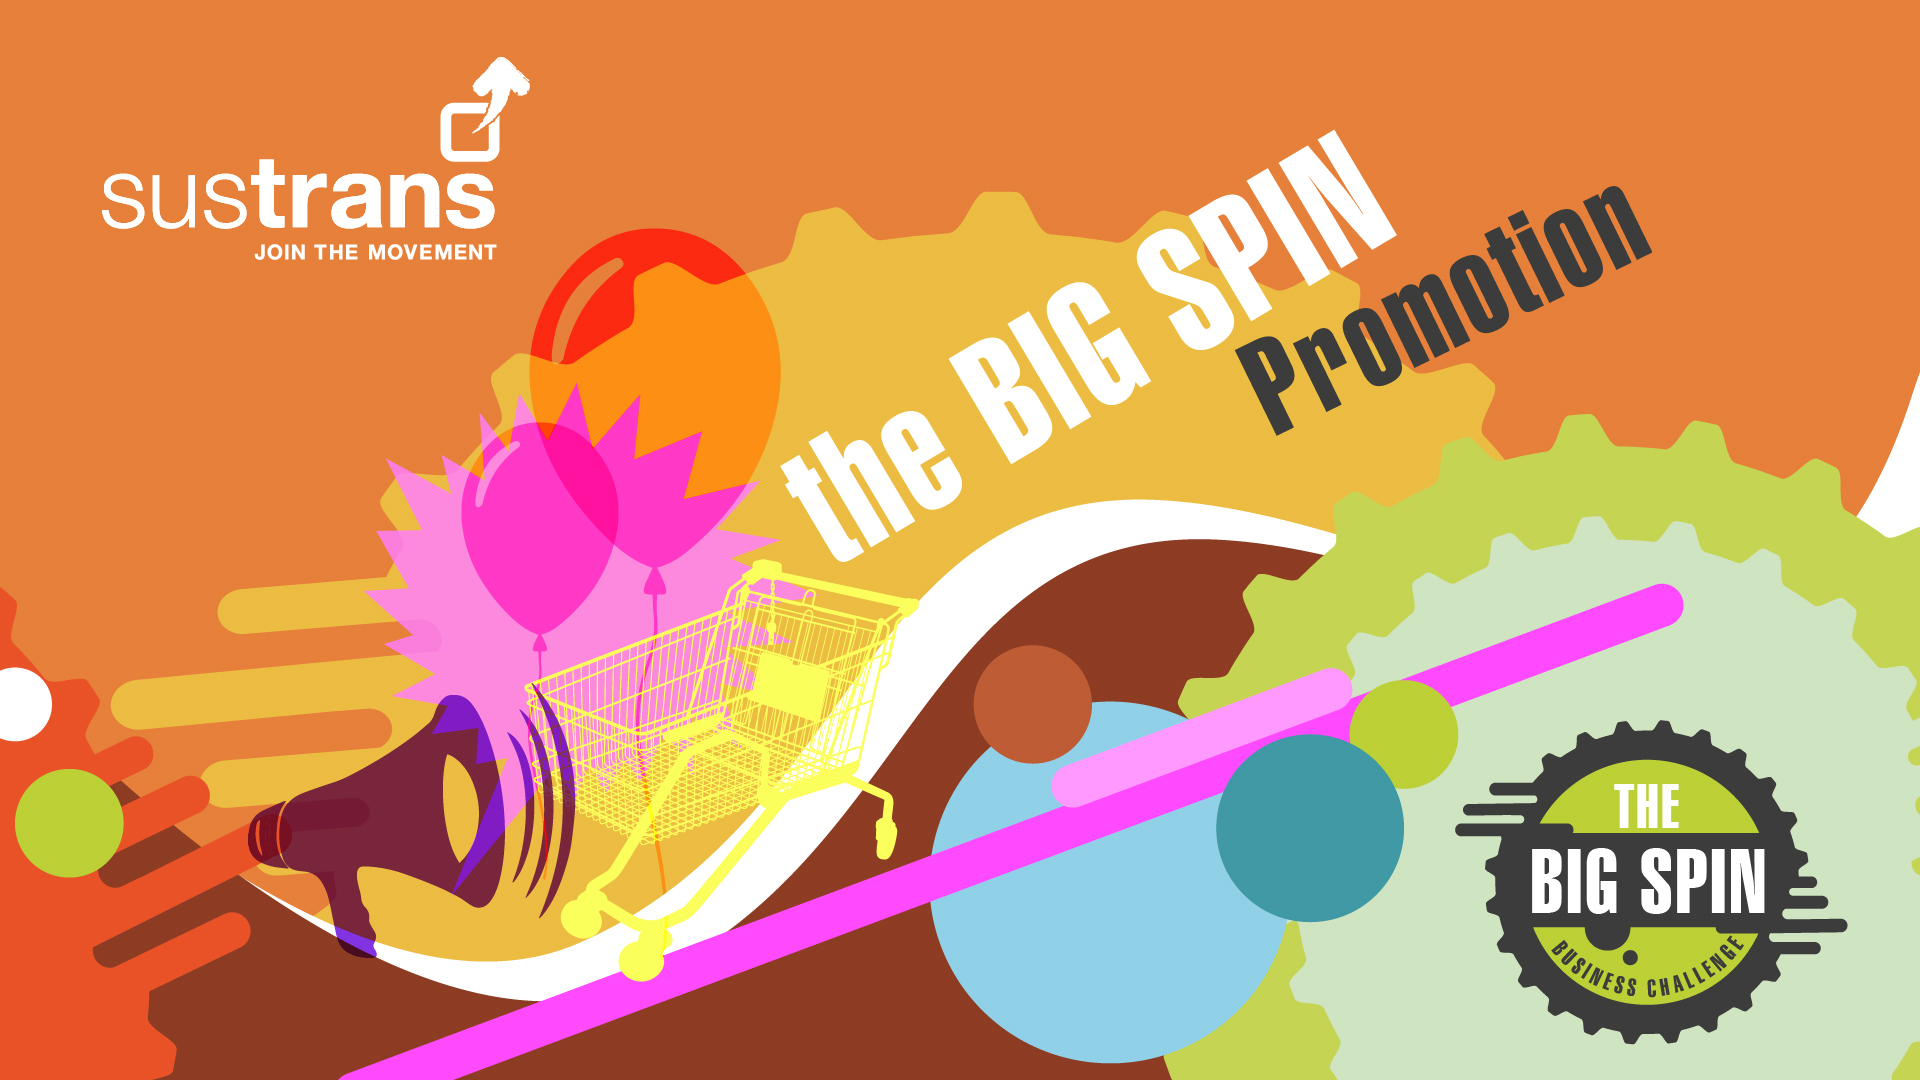 Big Spin Promotion